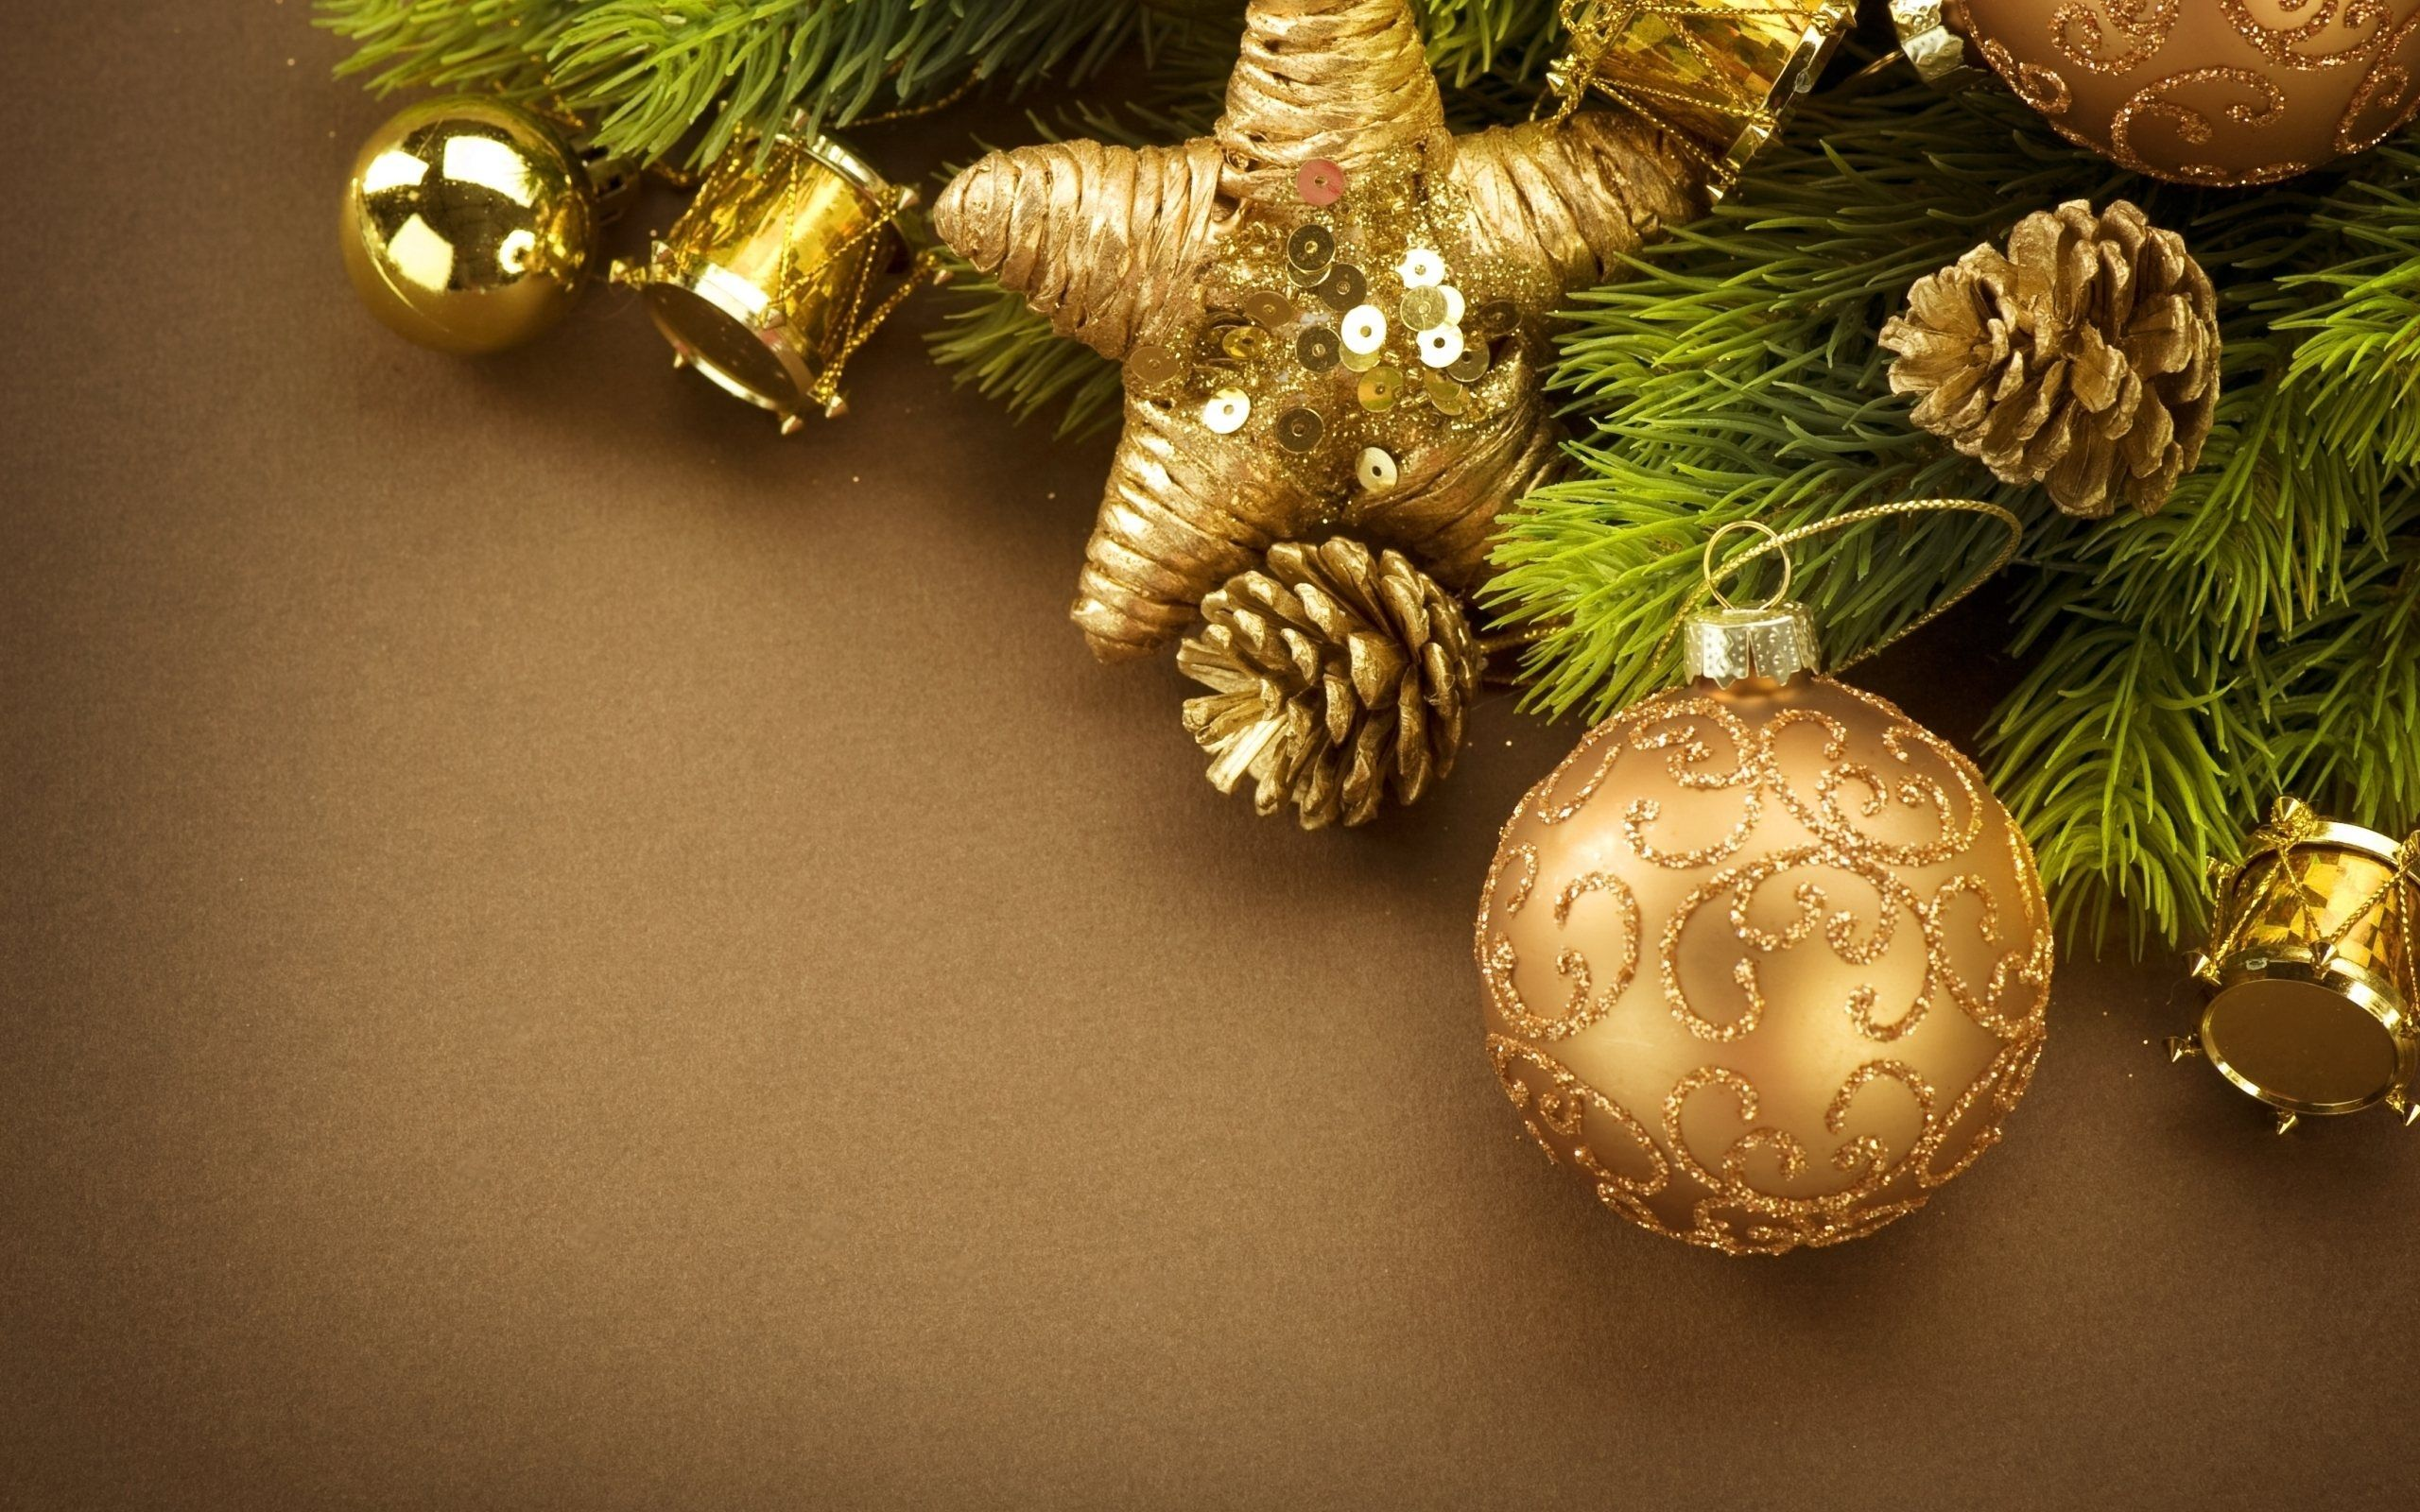 In This Post We Have Provide The Latest Collections - Gold Christmas Wallpaper Hd , HD Wallpaper & Backgrounds